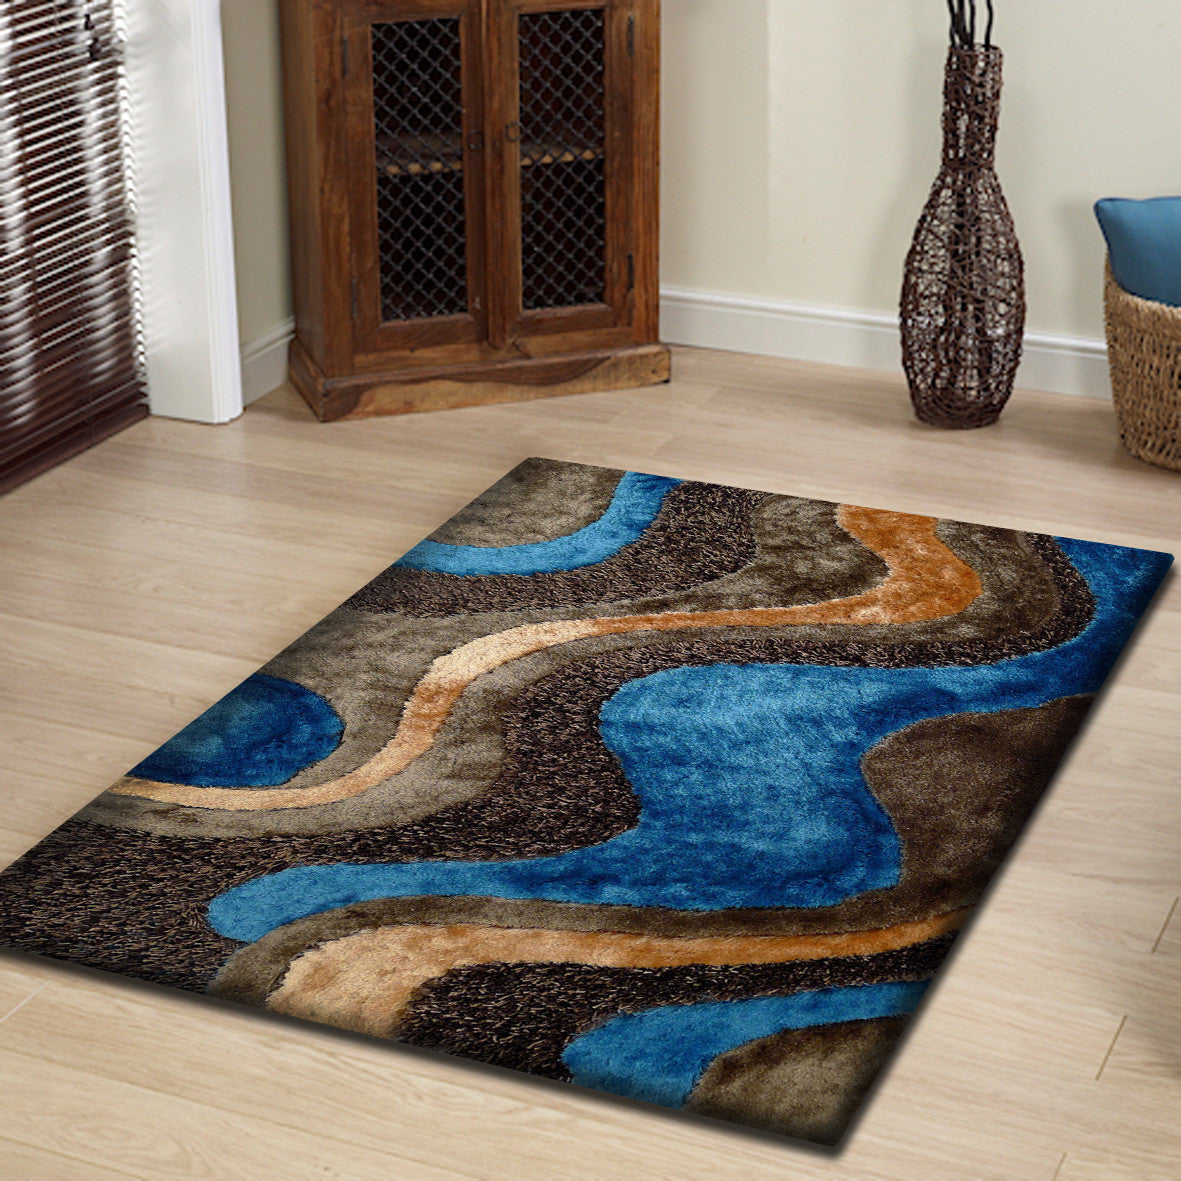 Brown With Blue Shag Rug , Area Rug   Rug Addiction, Rug Addiction   1 ...